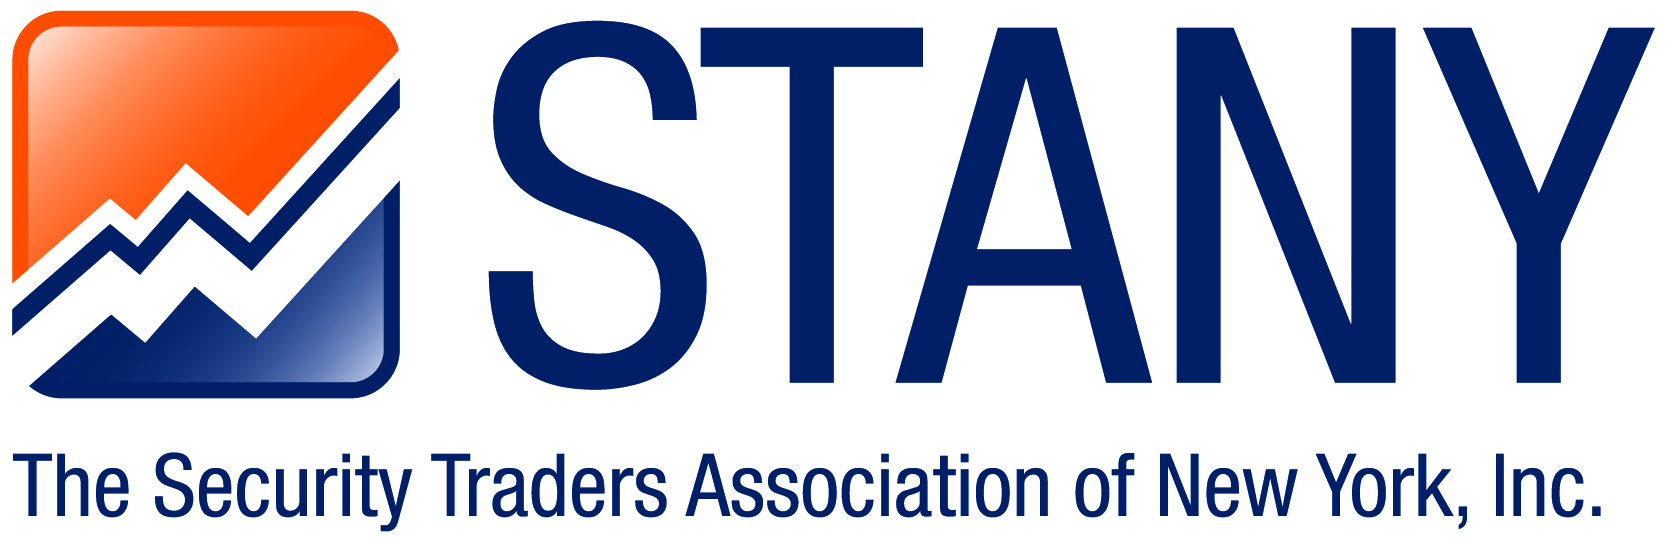 Security Traders Association of New York (STANY)